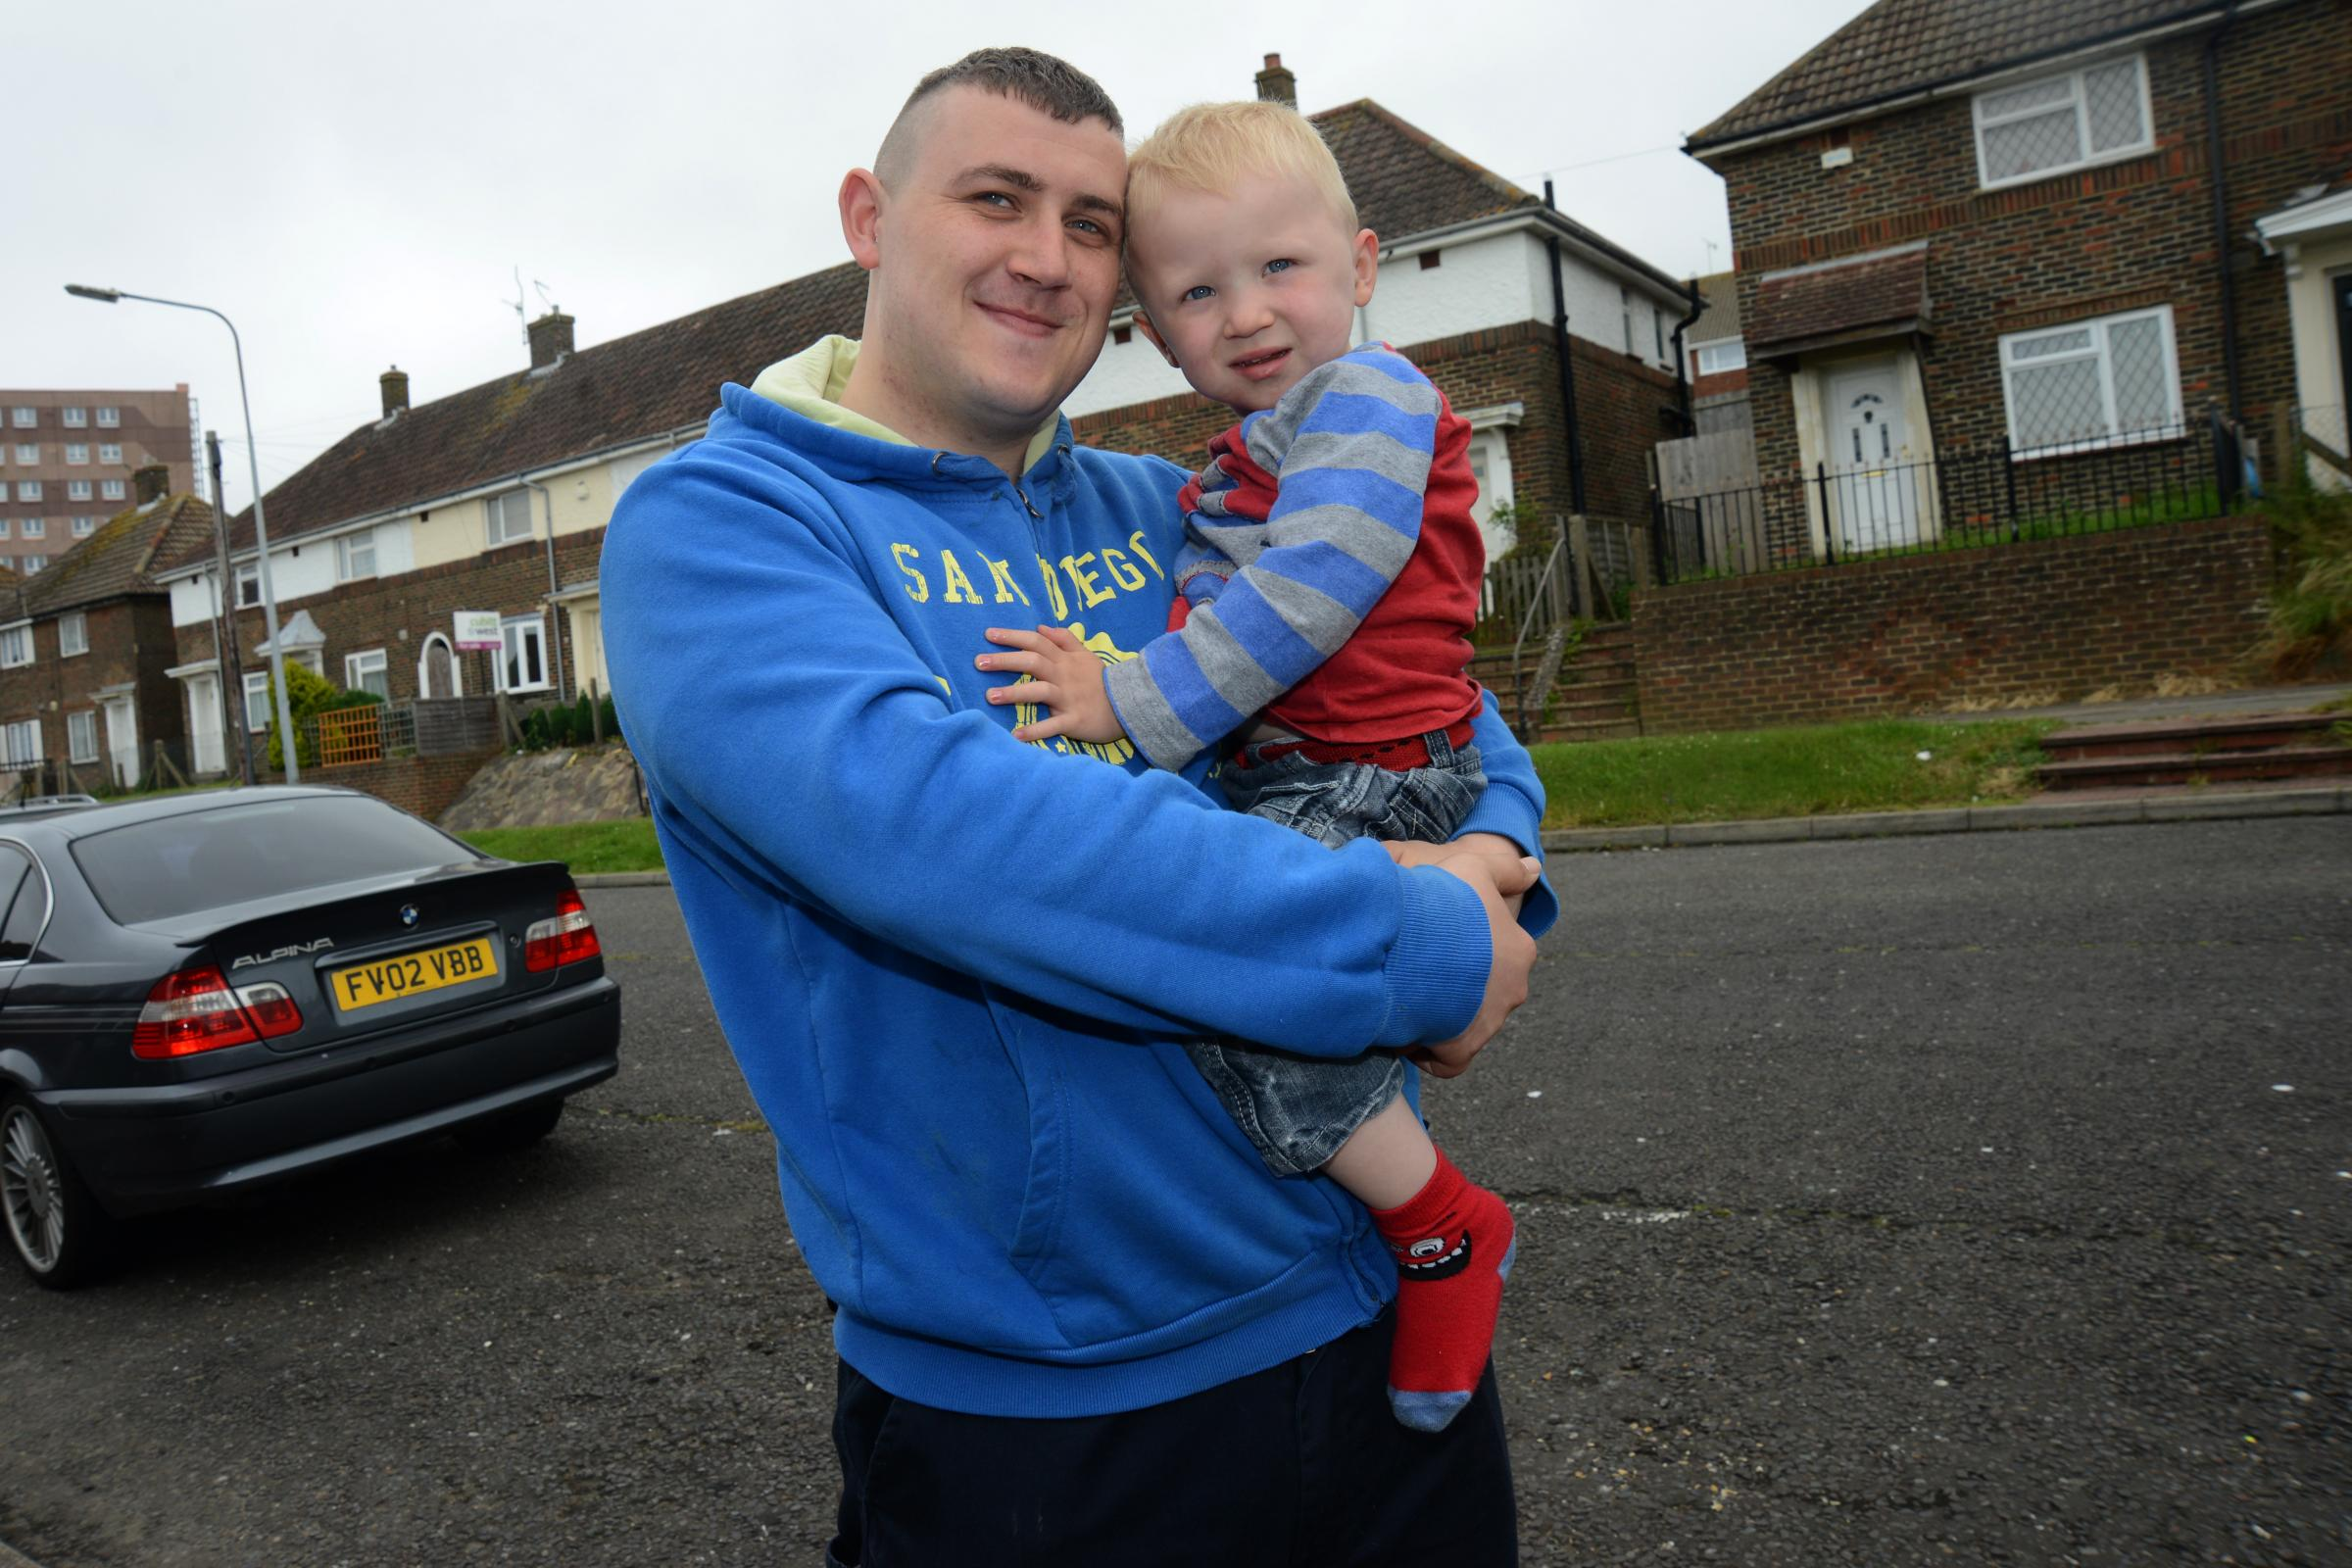 Whitehawk dad riding 200 miles for baby unit aid